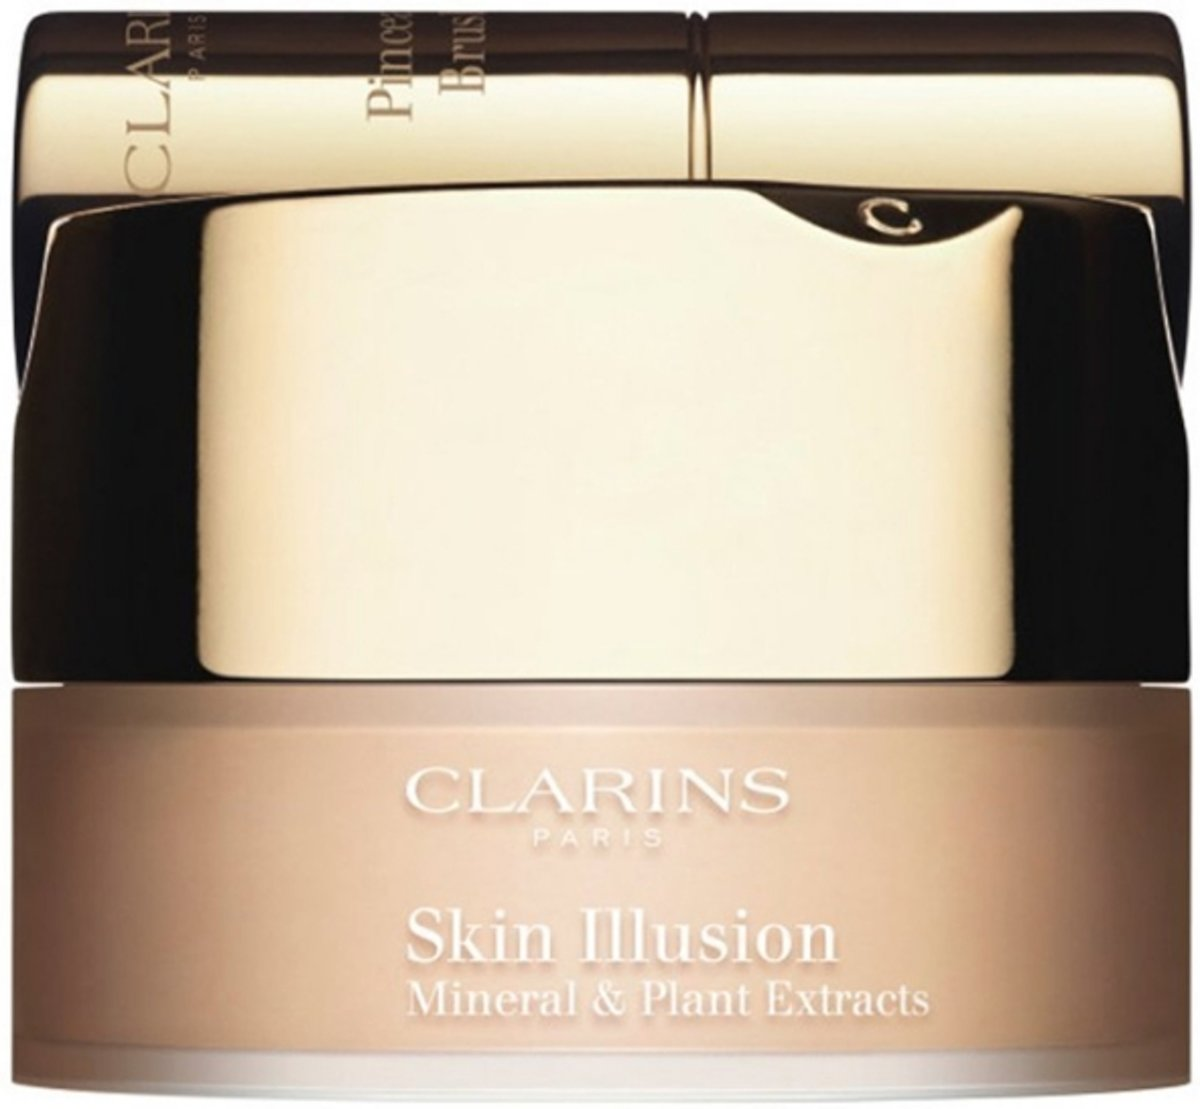 Clarins-Skin Illusion Loose Powder Foundation-nr.107